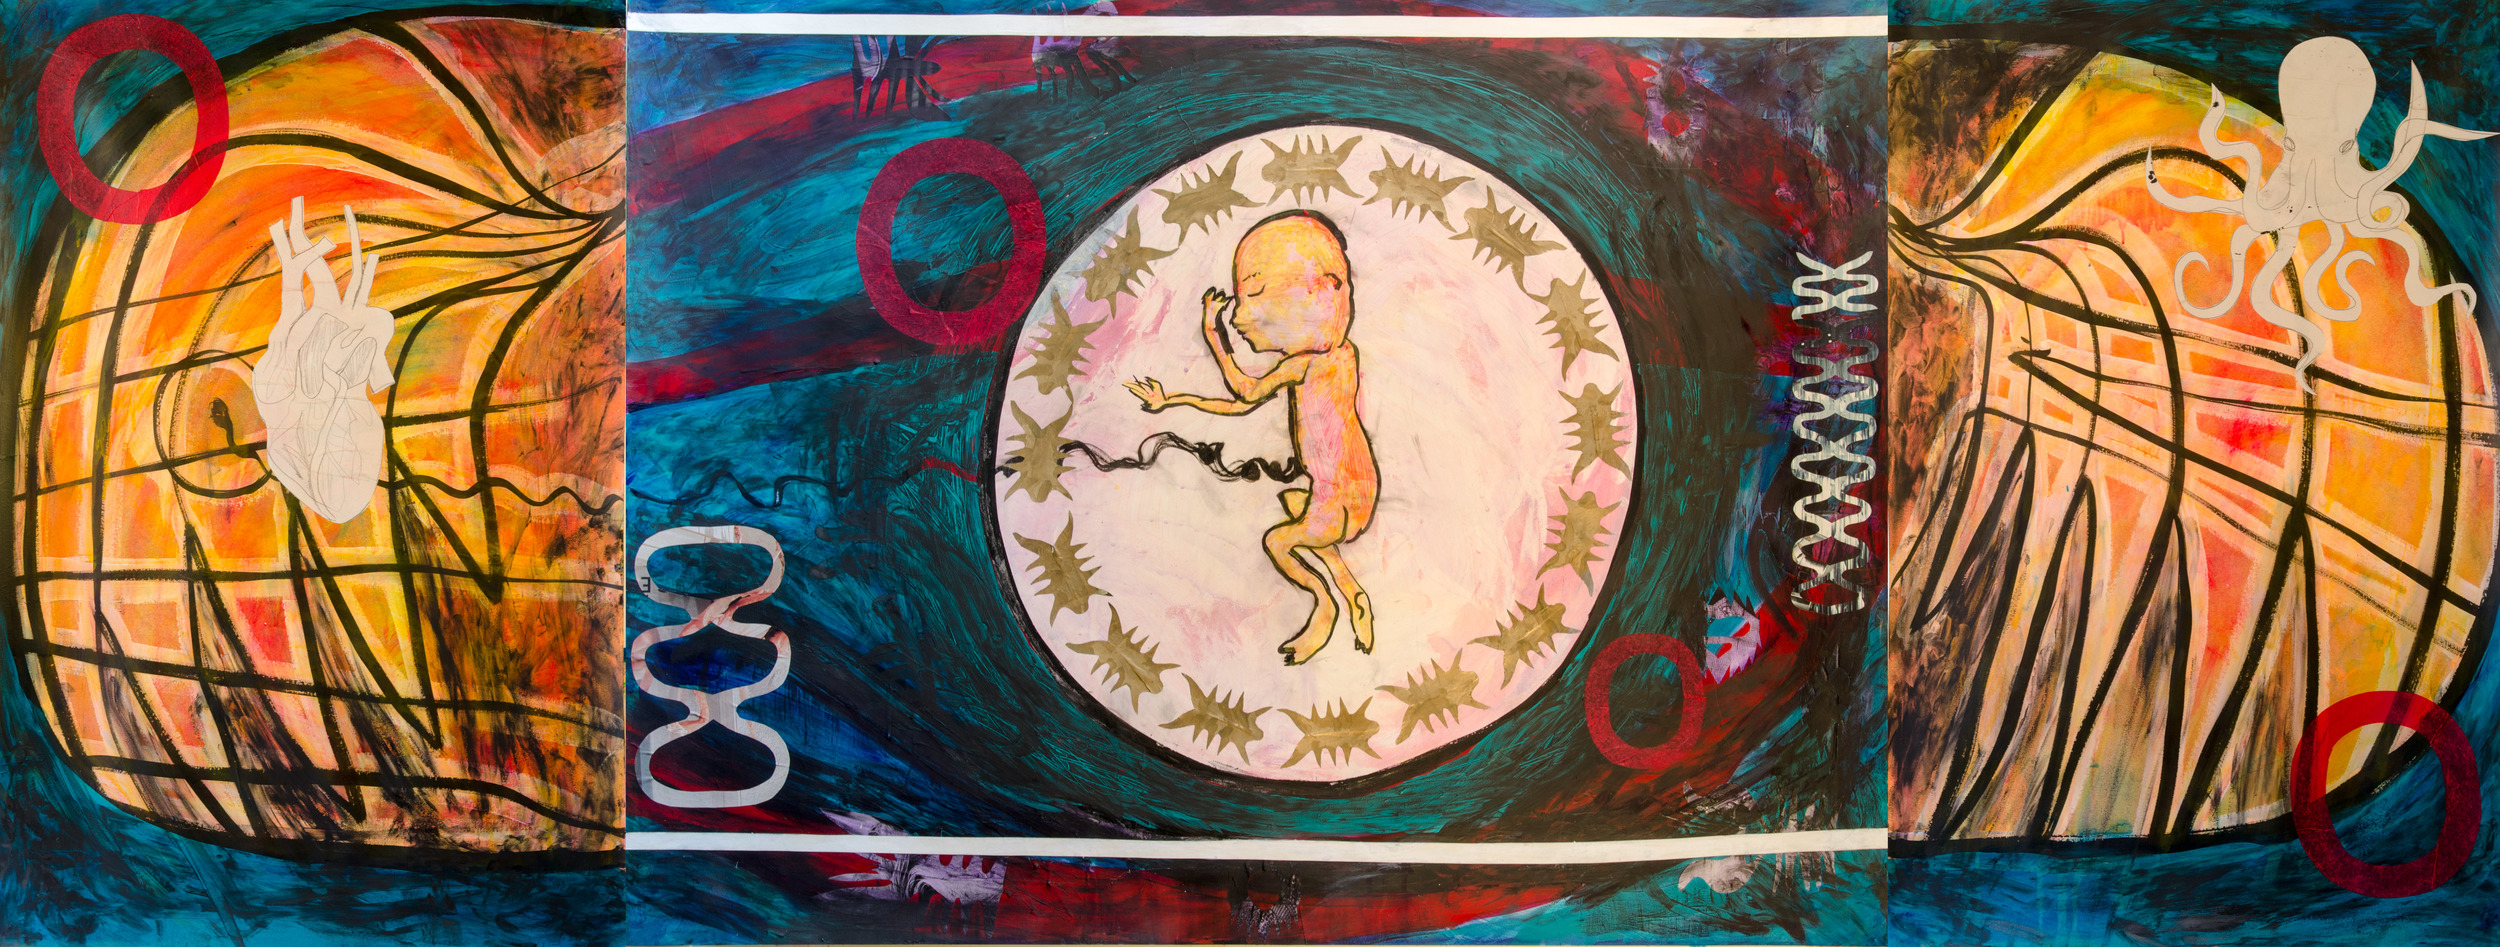 "Fetus, Heart, Octopus - Triptych - 38"" x 50"" Paint, ink, collage"